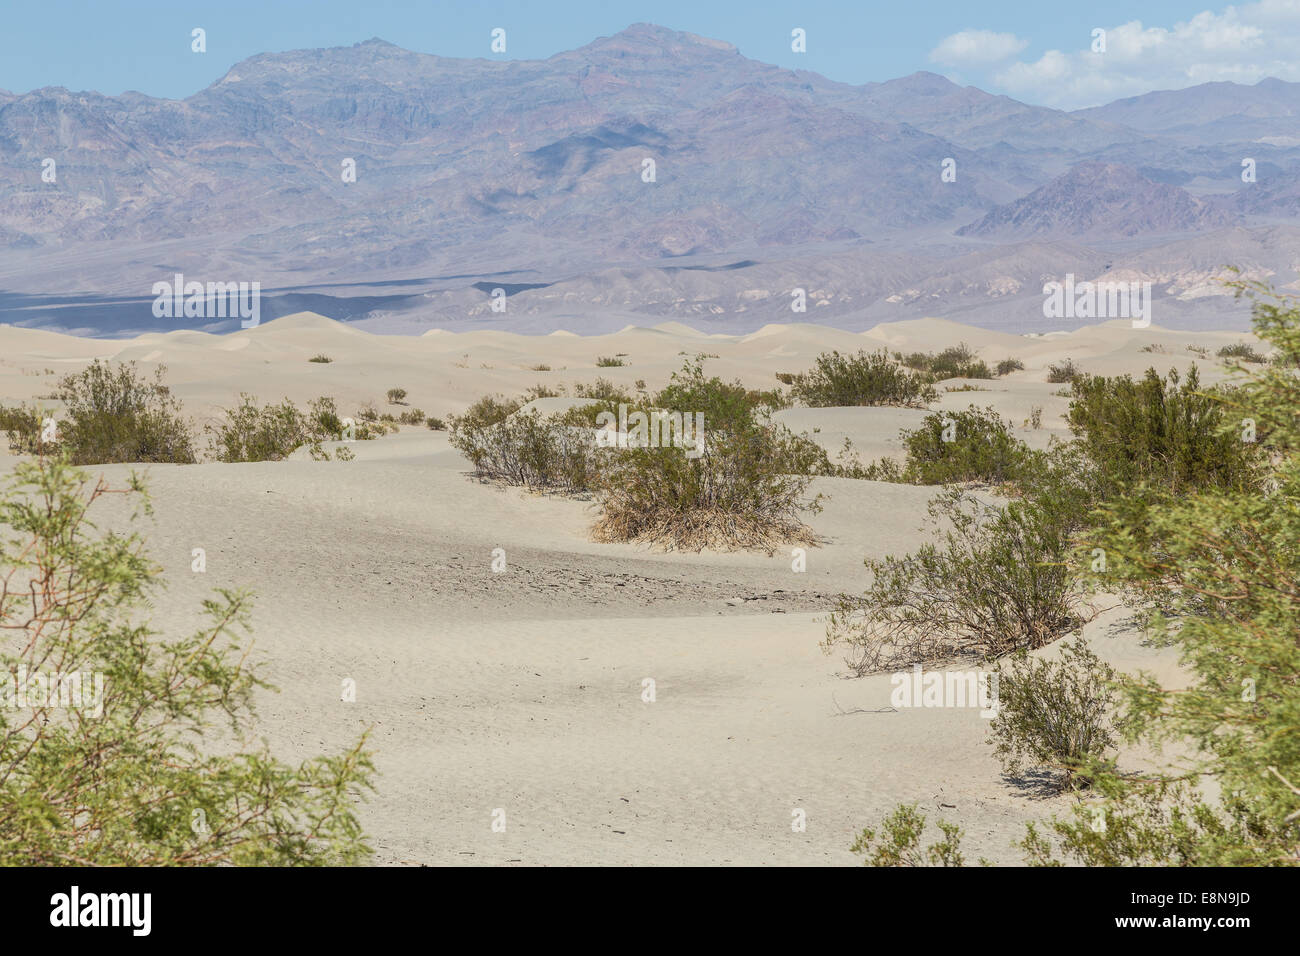 Mesquite Flat Sand Dunes in the Death Valley, mojave desert in California, USA - Stock Image